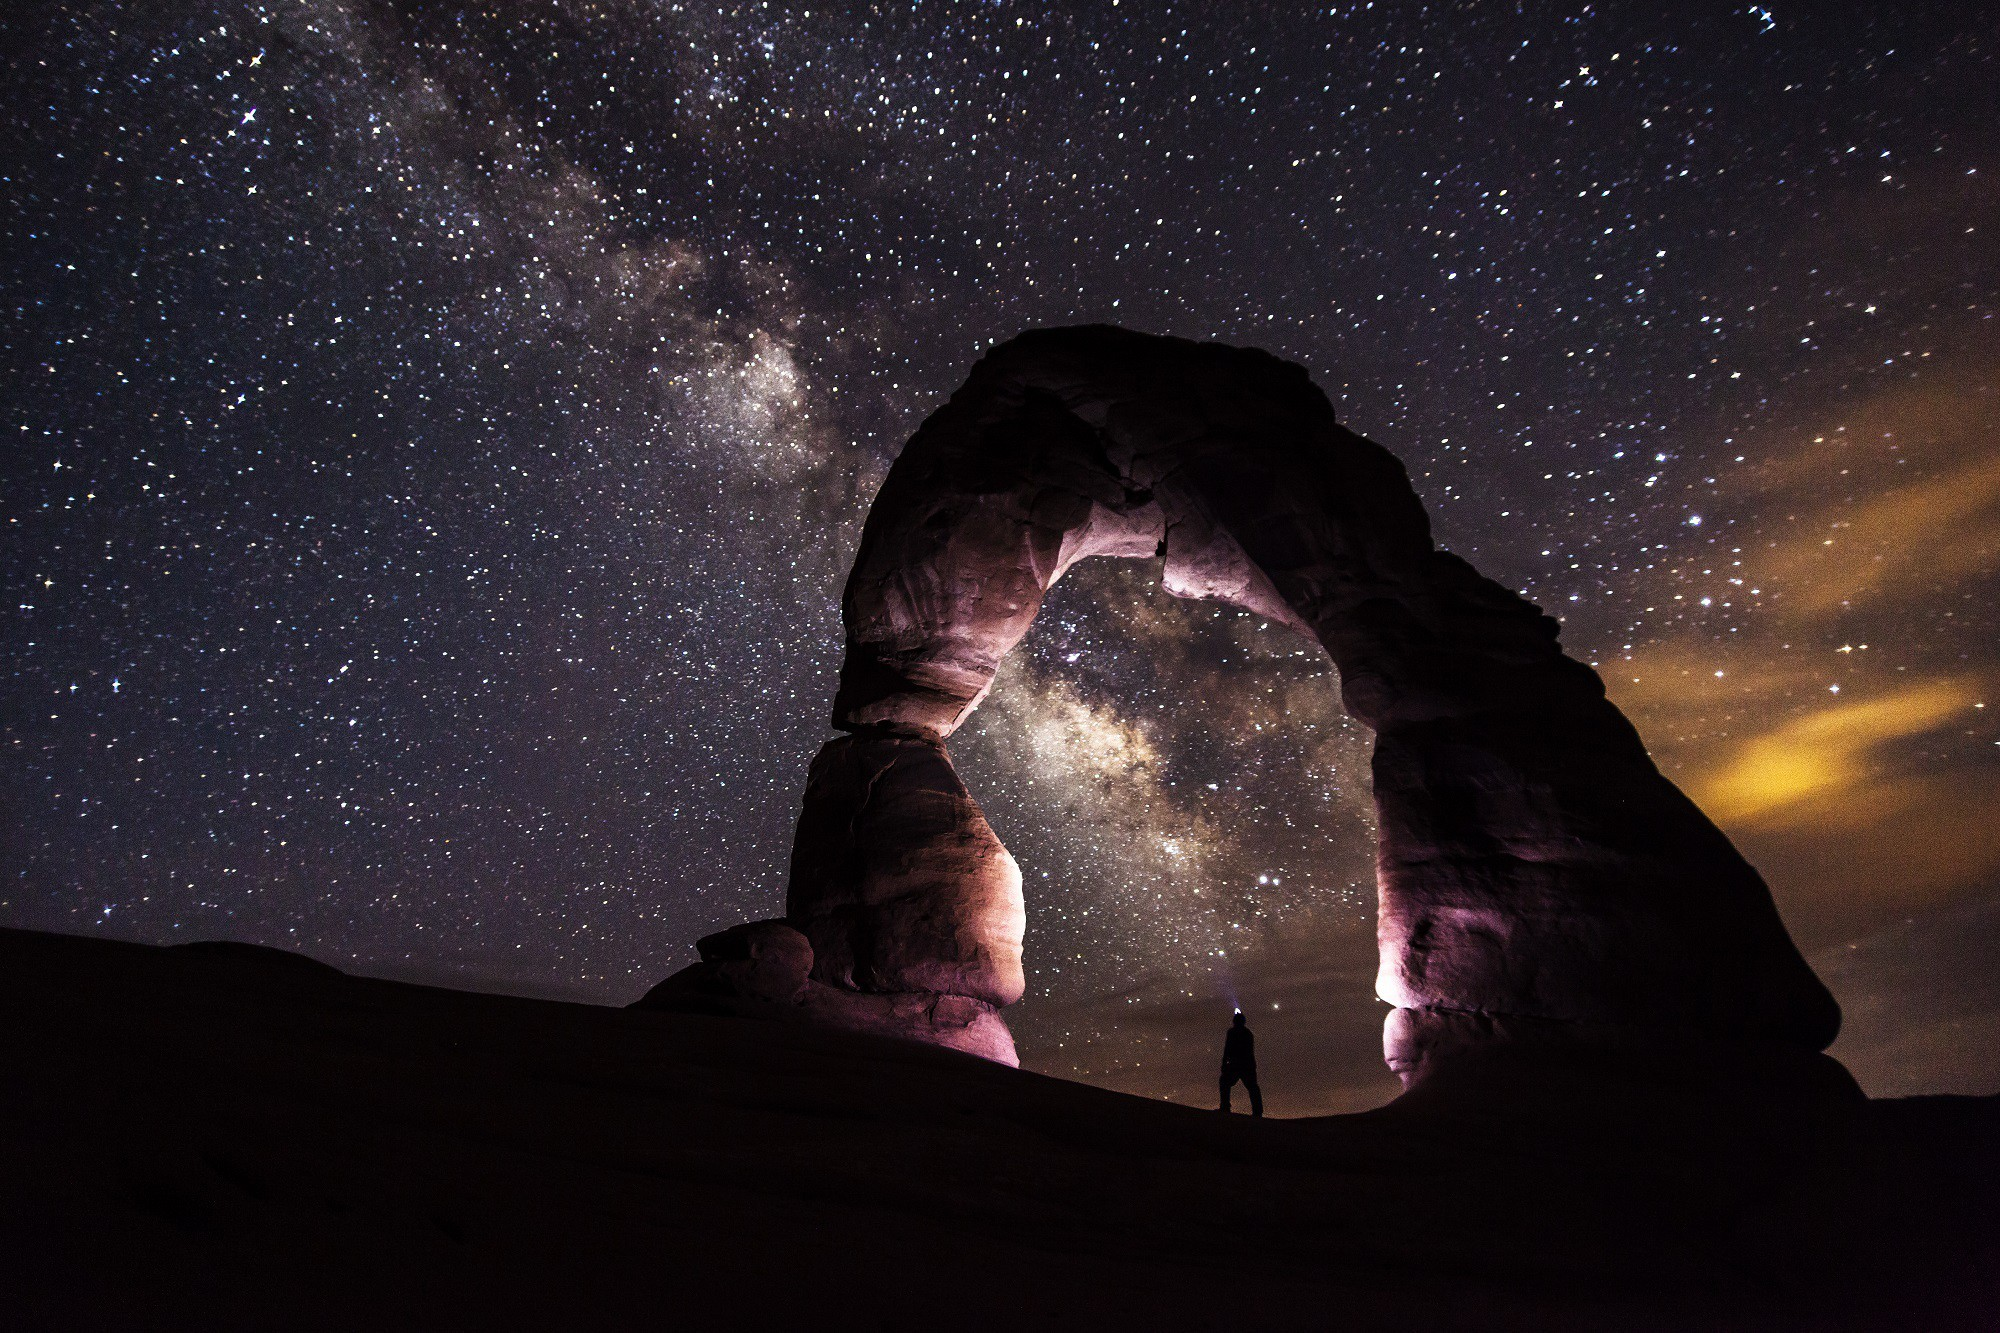 d2bd25370c9a98 Top 10 Places To Stargaze In The Bay Area